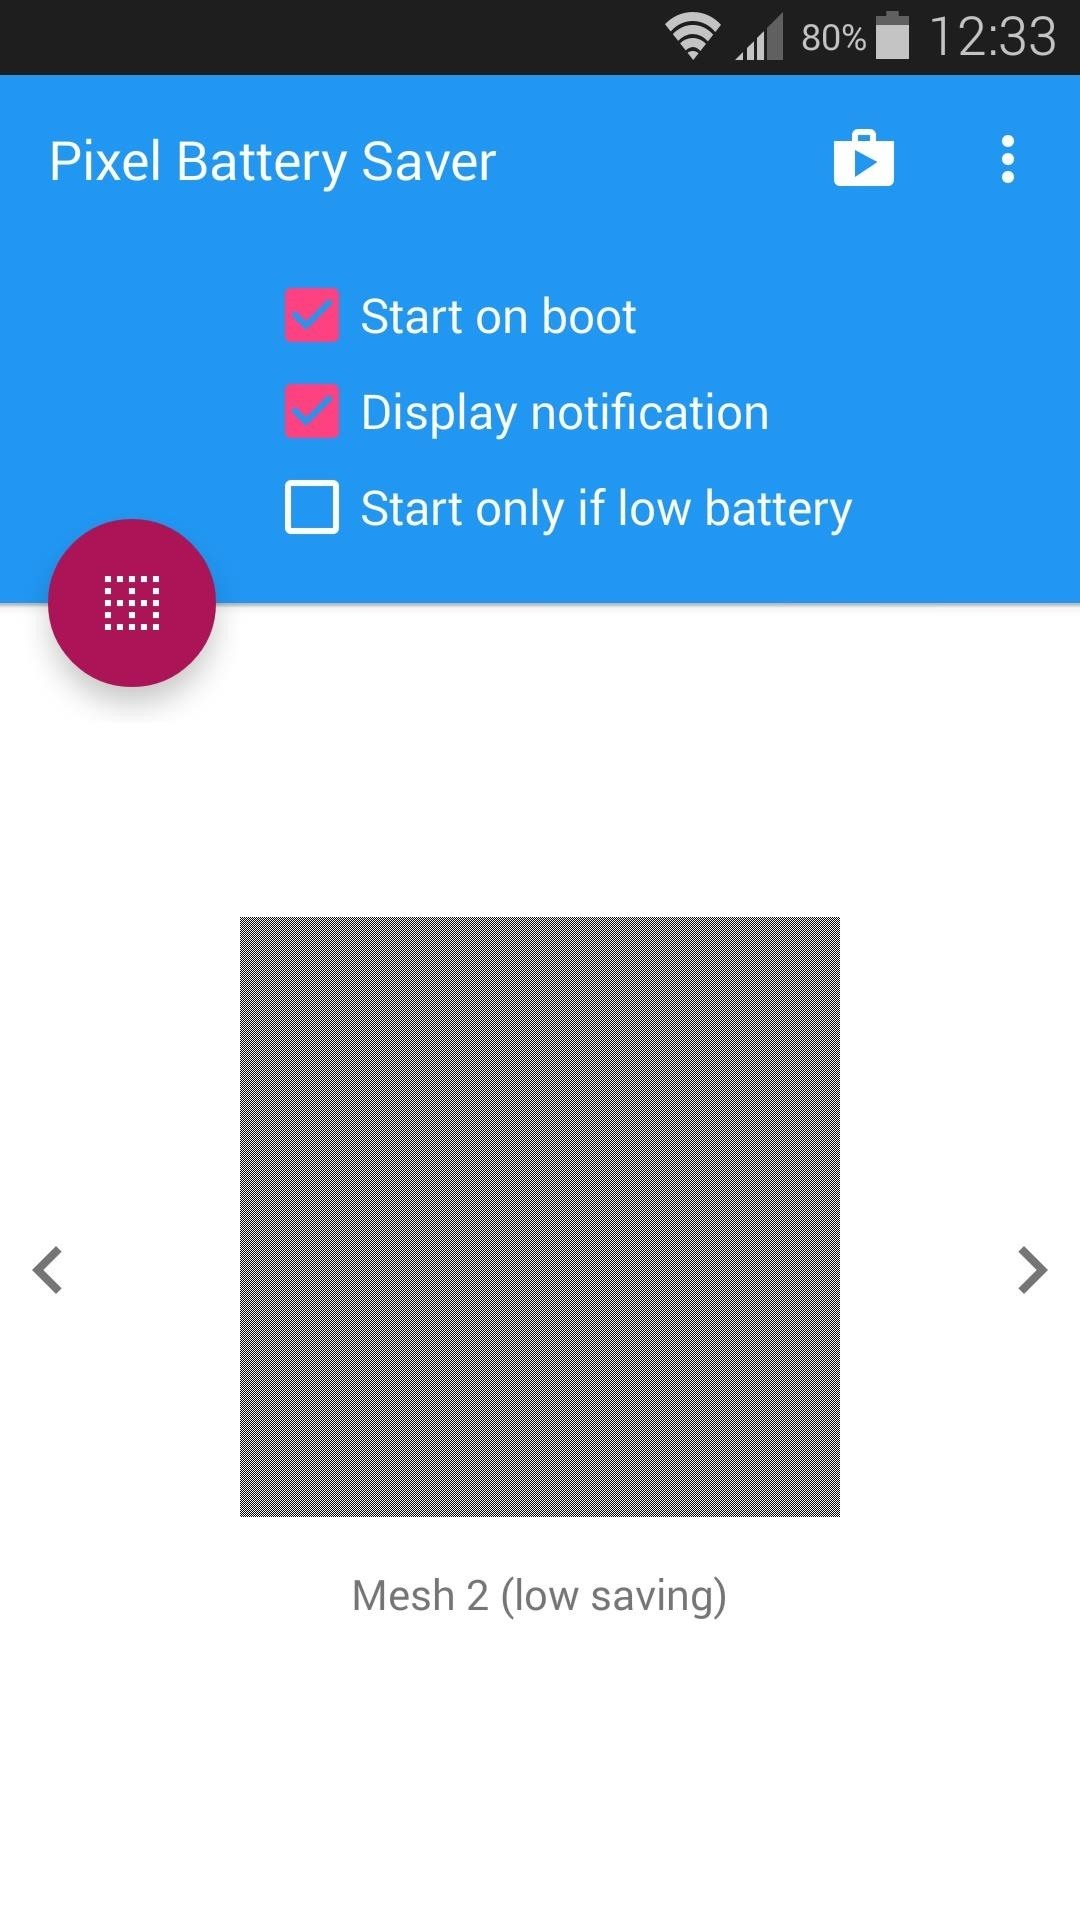 Save Battery Life on Android by Turning Off Pixels (No Root Required)